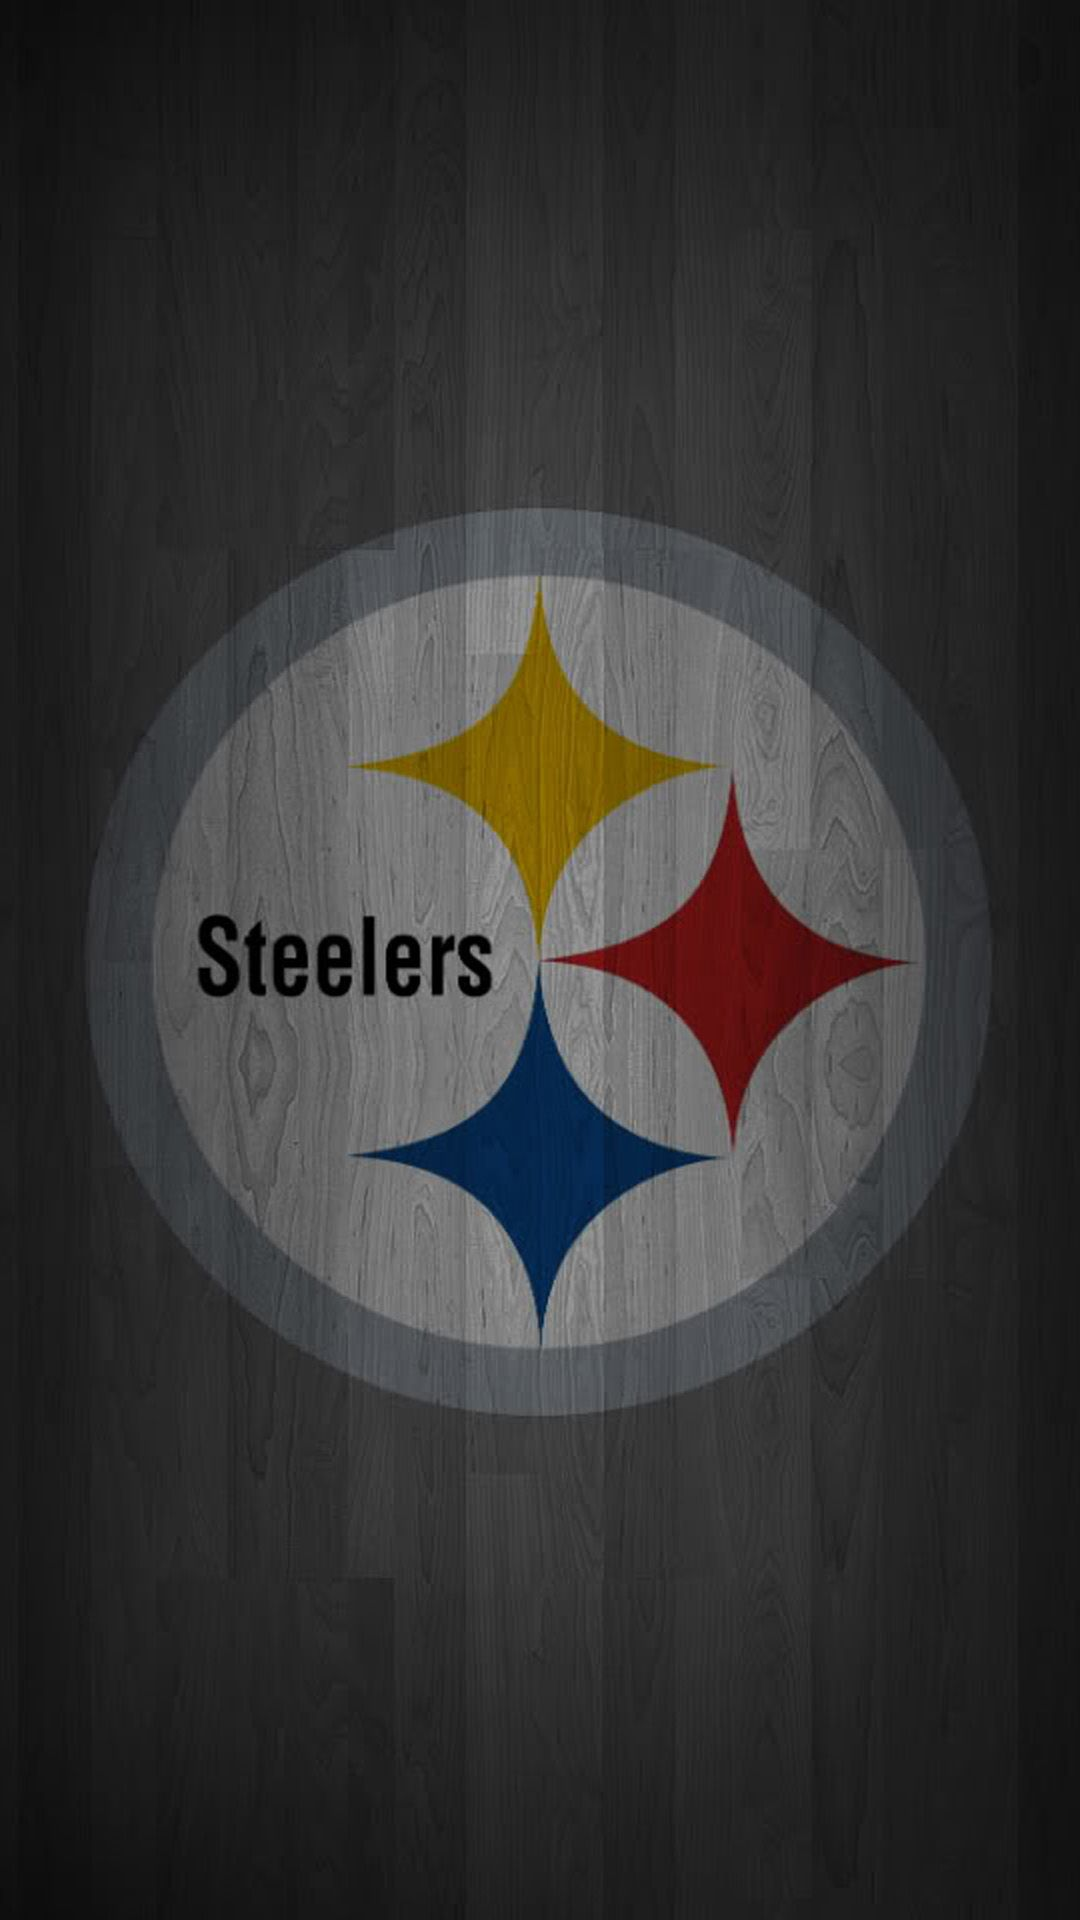 Steelers Wallpaper Iphone